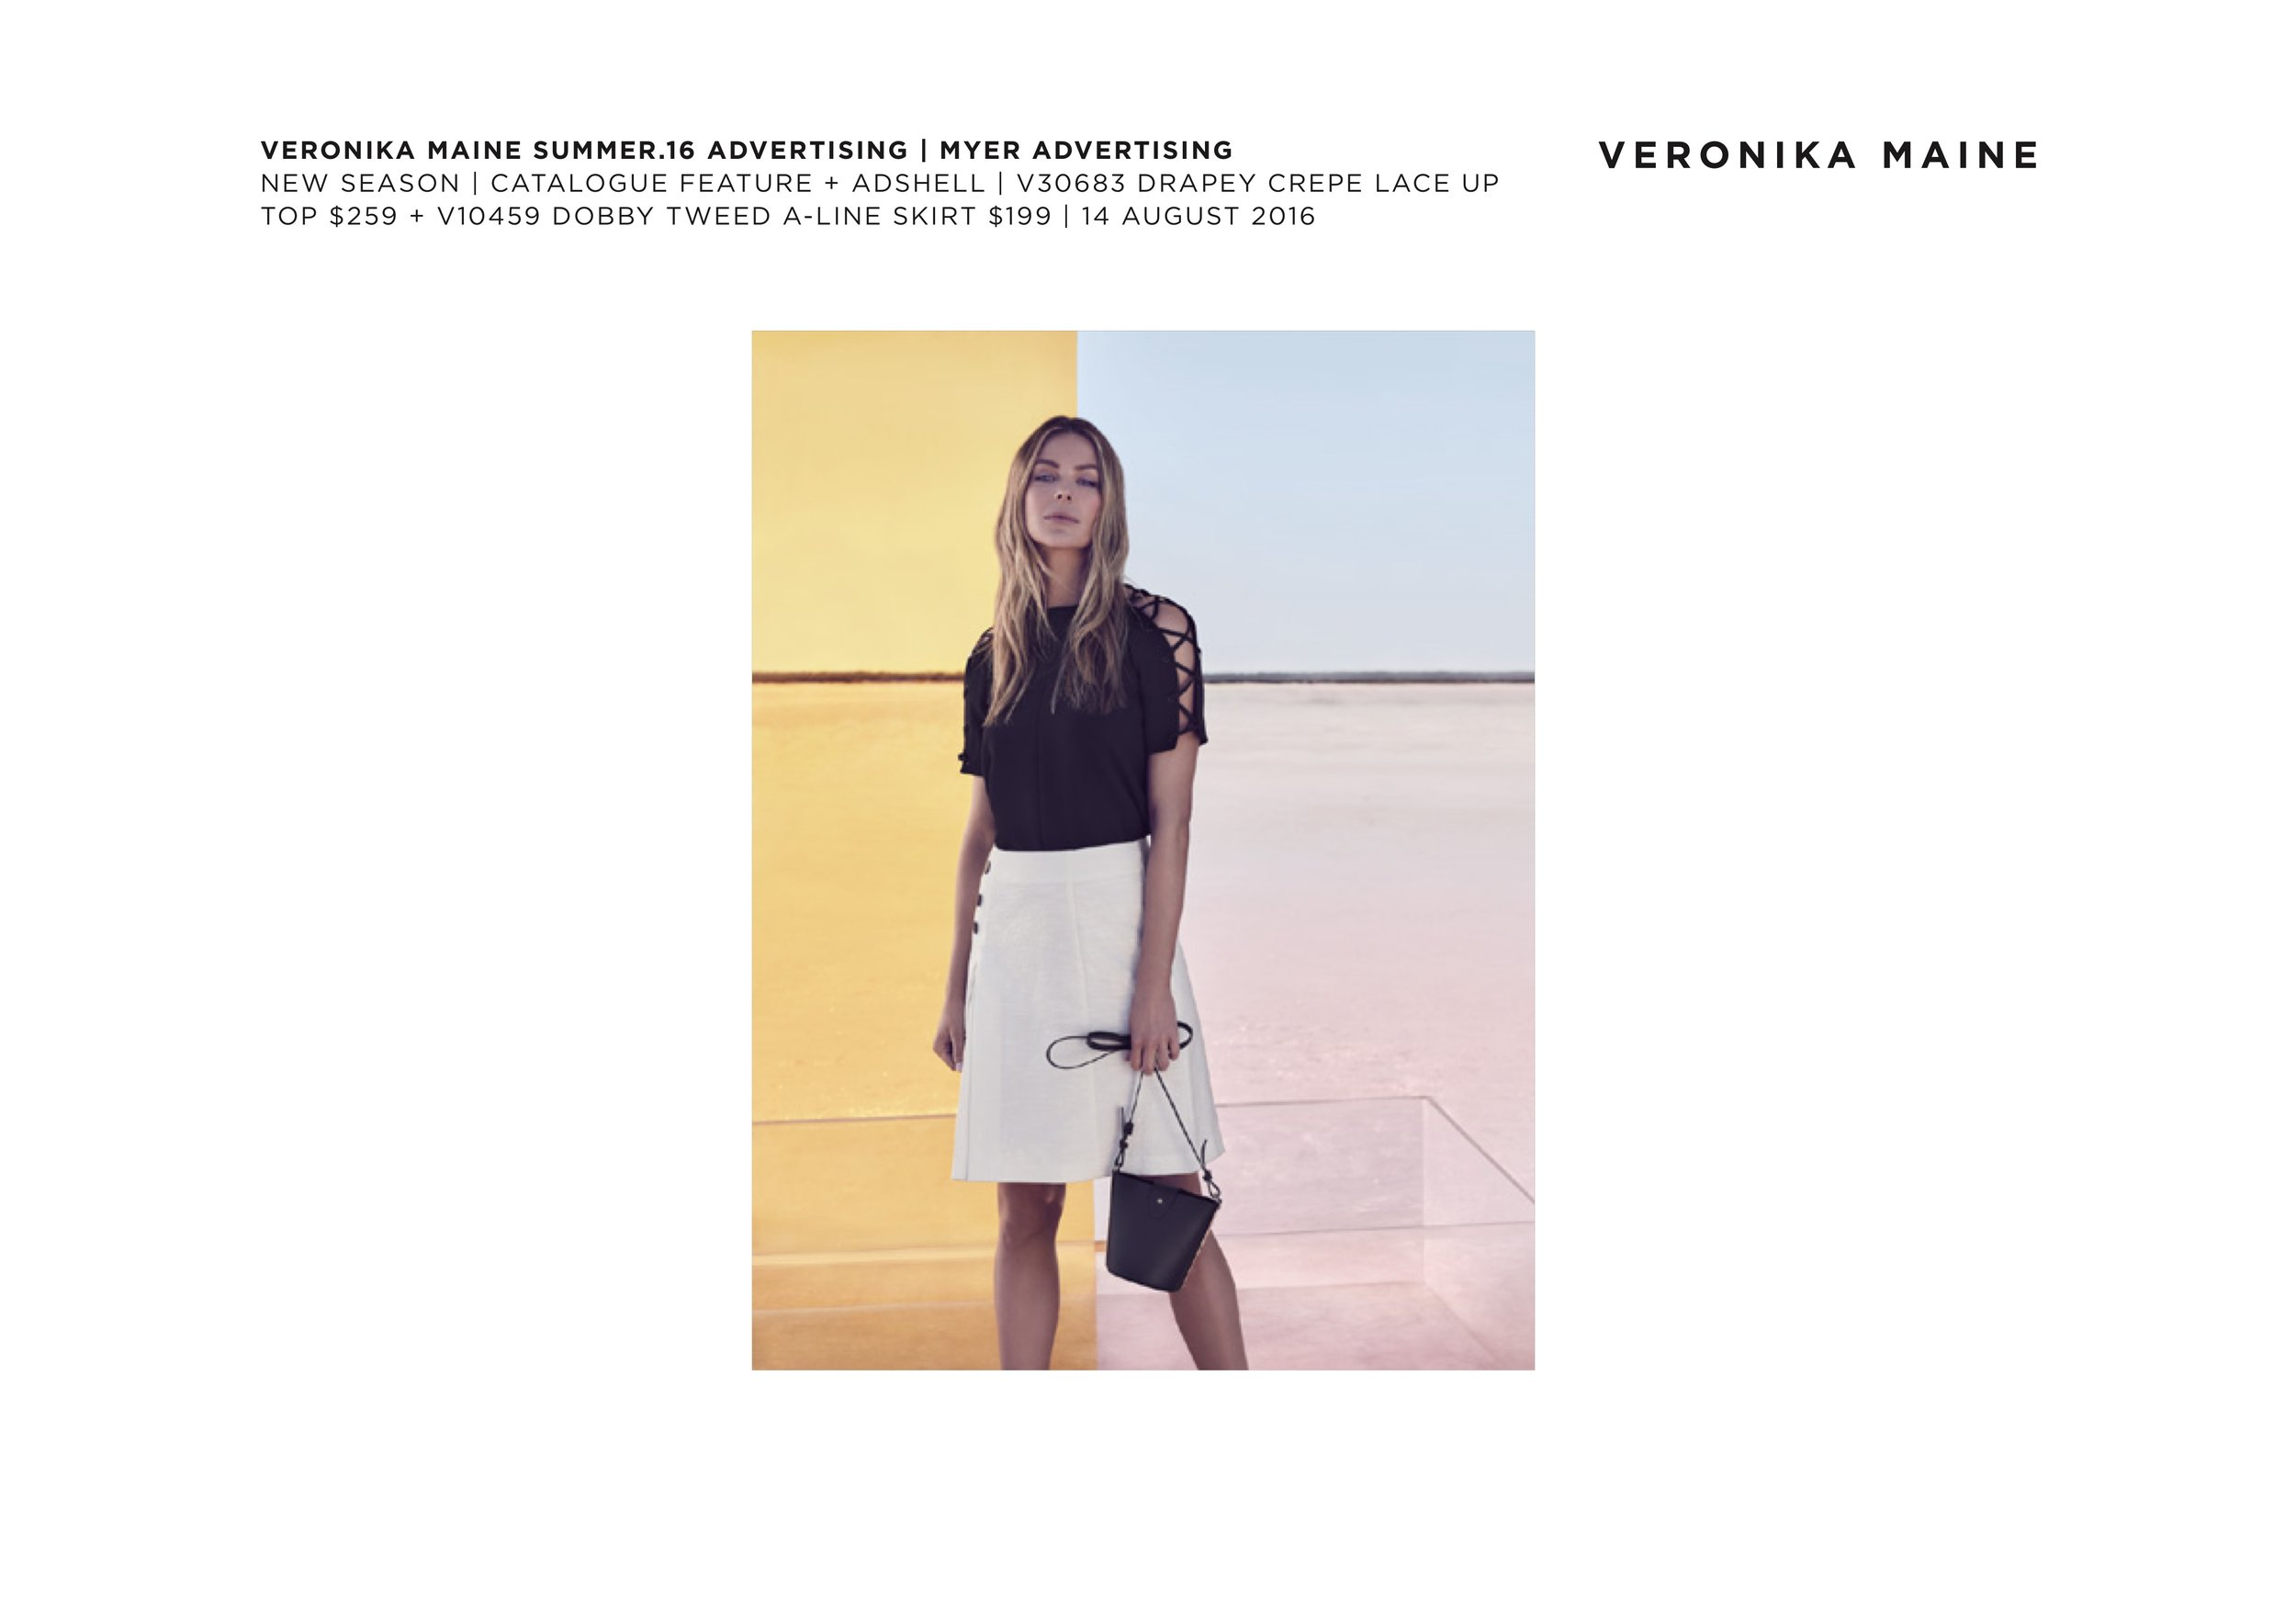 Veronika Maine Summer 2016 I Myer Advertising.jpeg